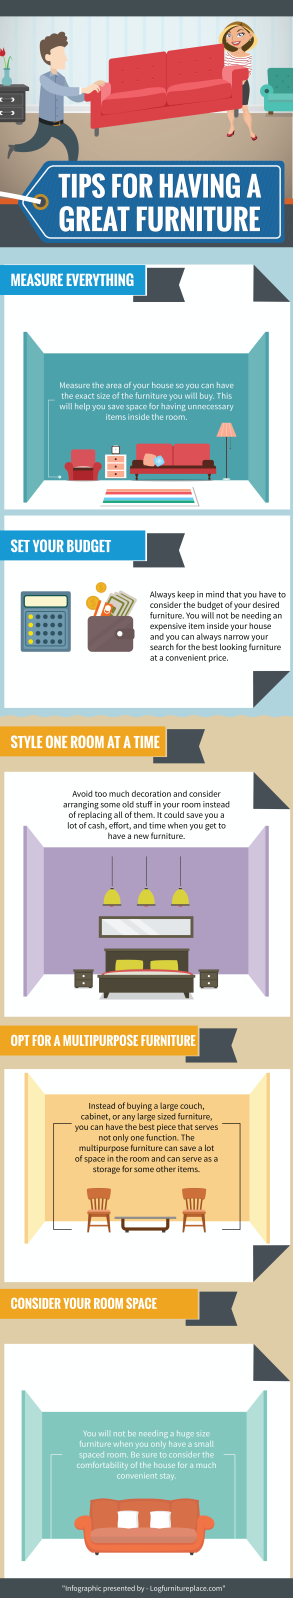 Infographic design by logfurnitureplace.com